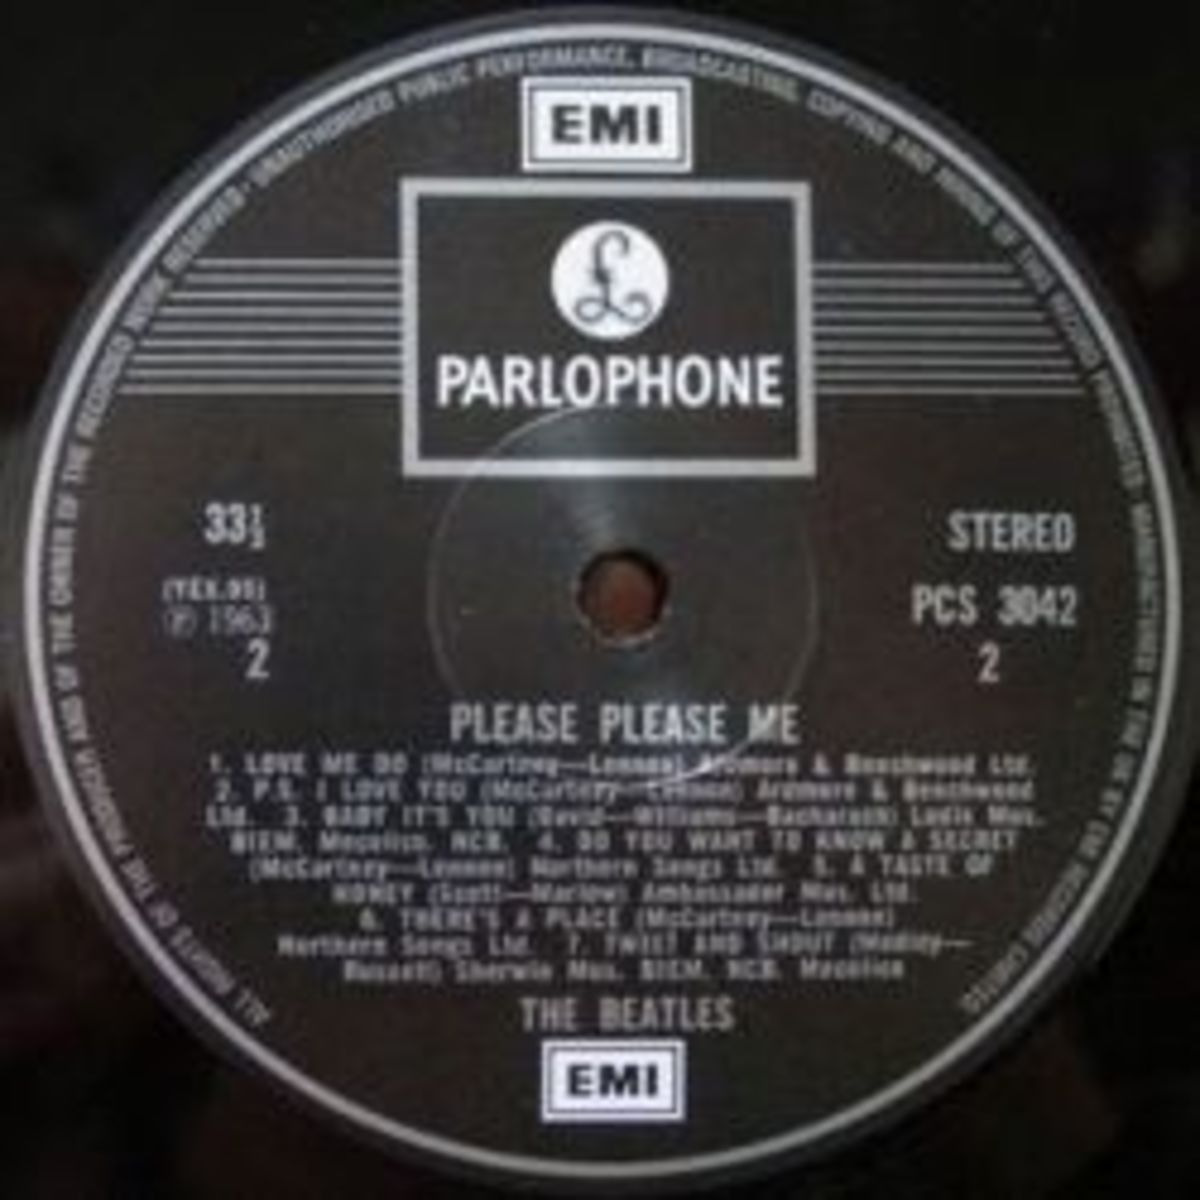 Beatles 1970s EMI Parlophone Black and Silver Two Mark Variant